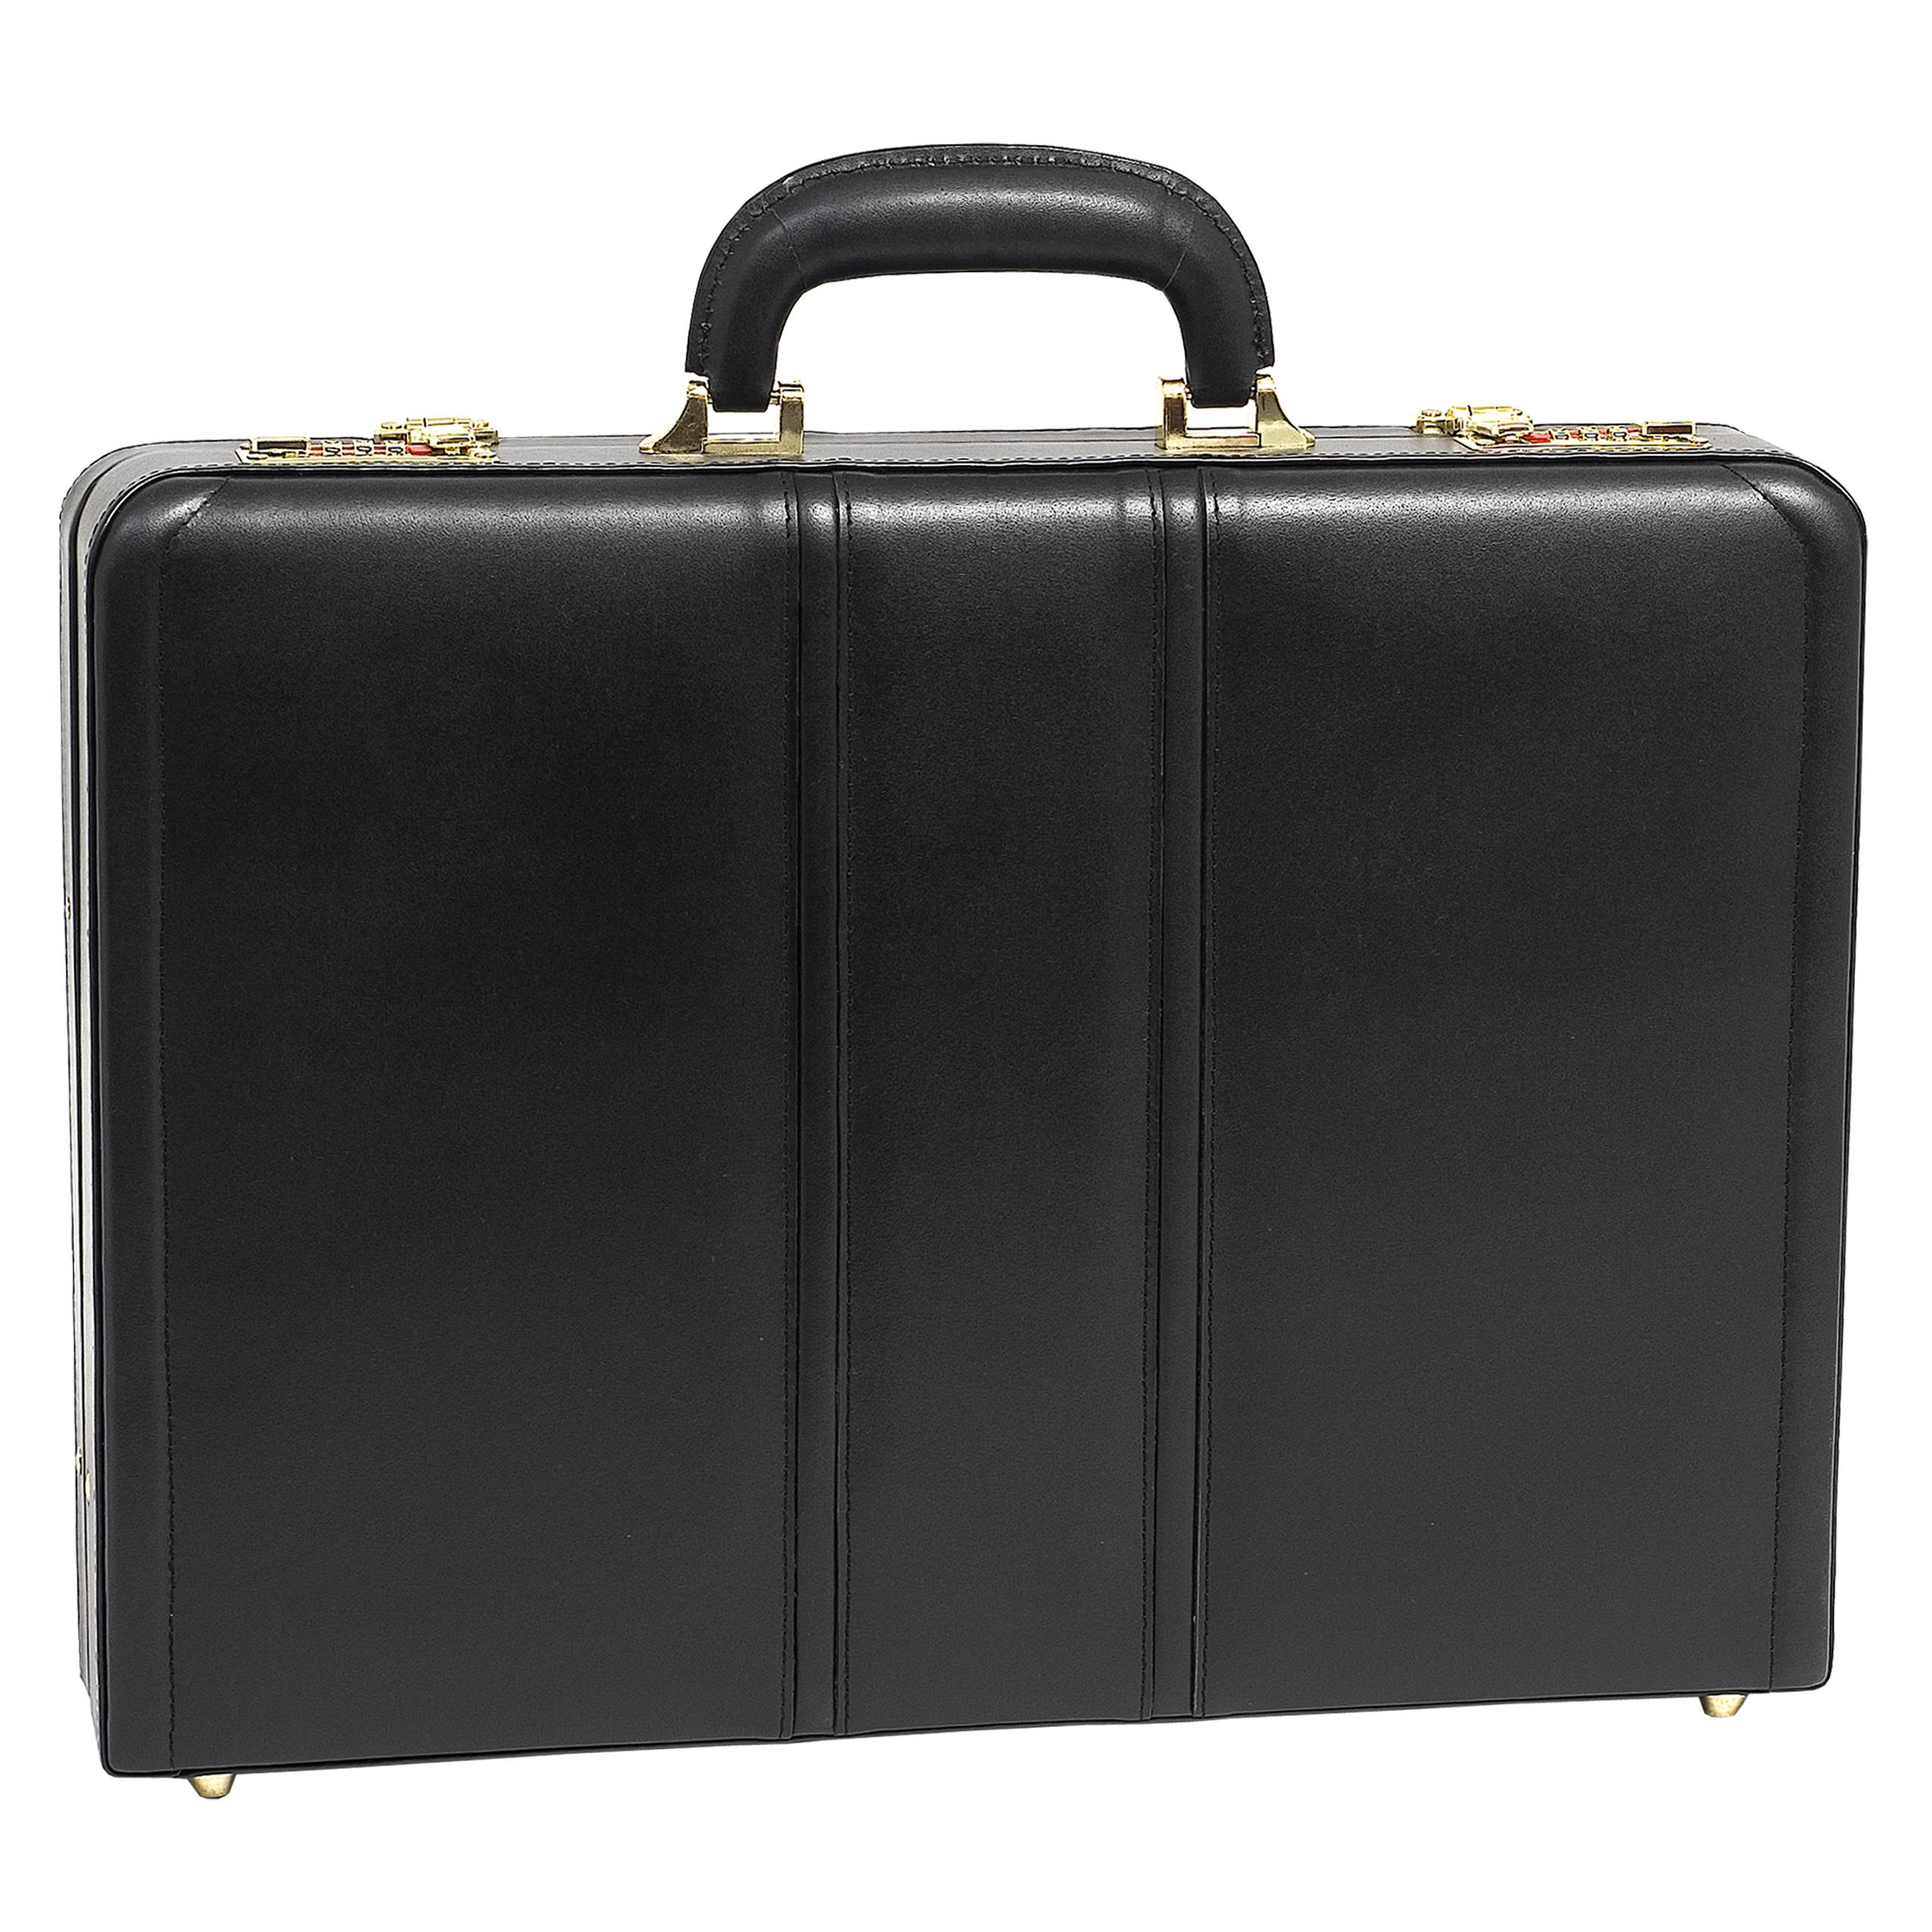 McKlein USA Coughlin Leather Expandable Attache Case